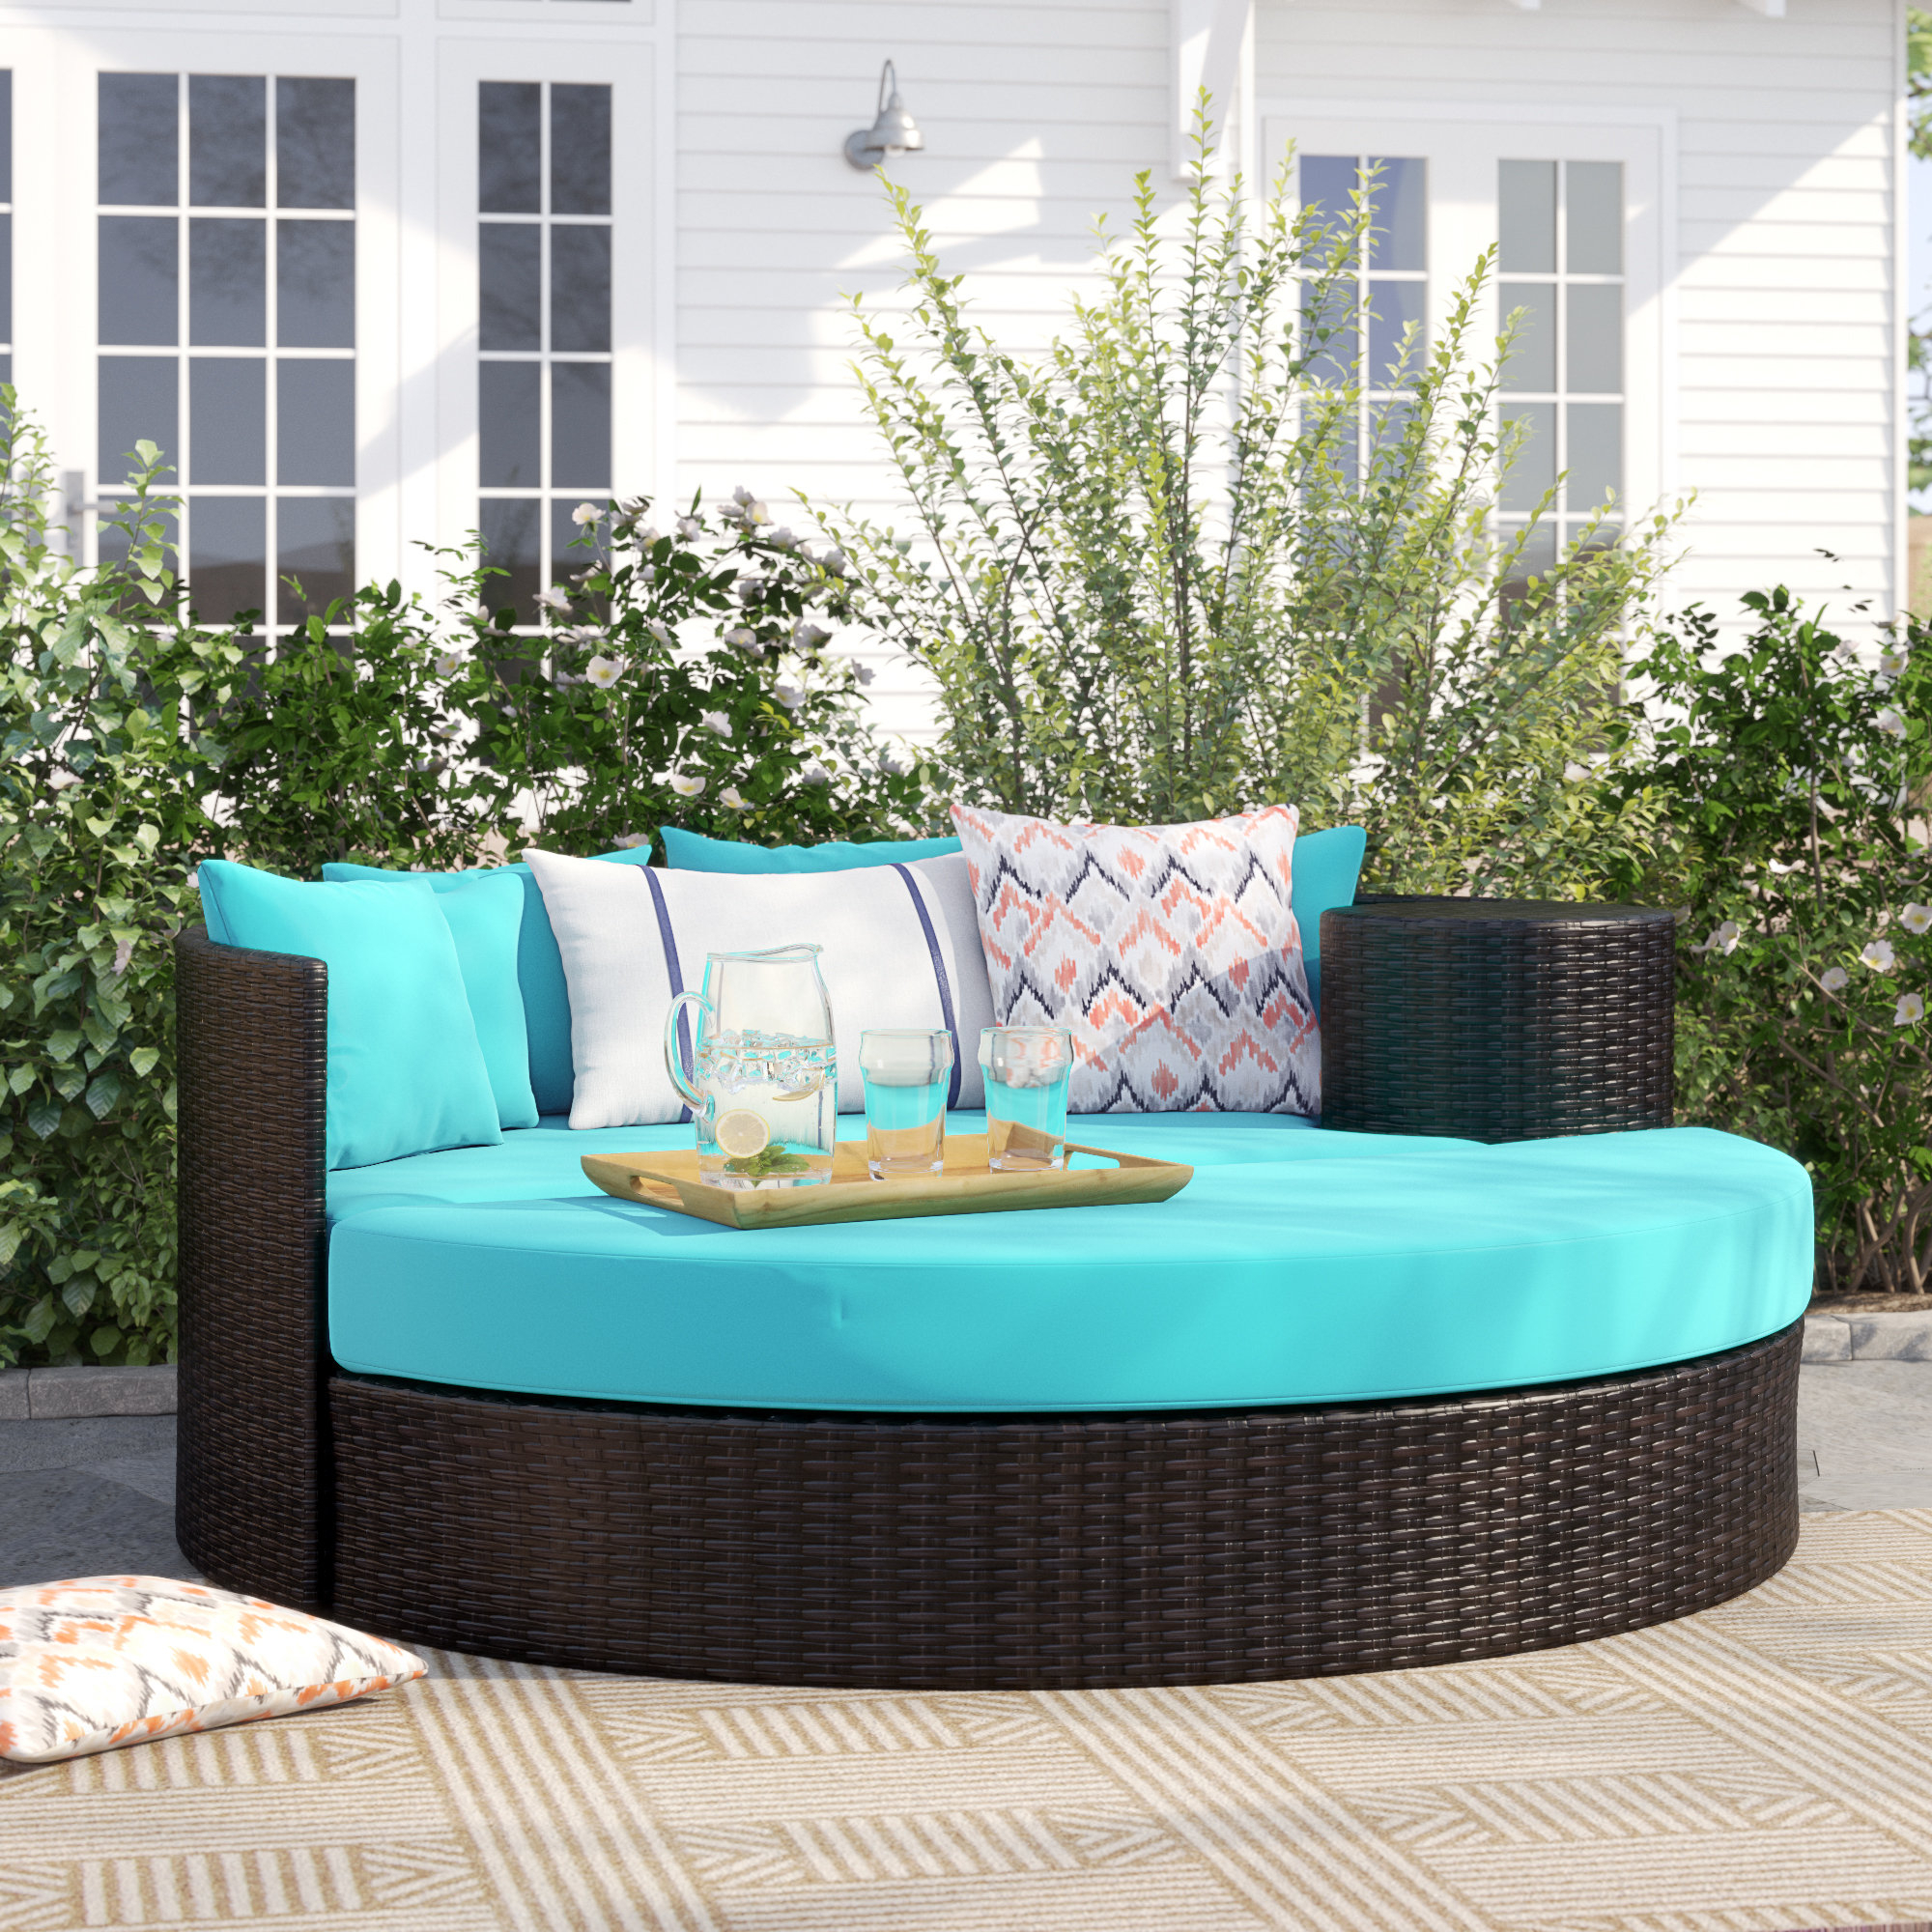 Tiana Patio Daybeds With Cushions In Well Known Freeport Patio Daybed With Cushion (View 7 of 20)